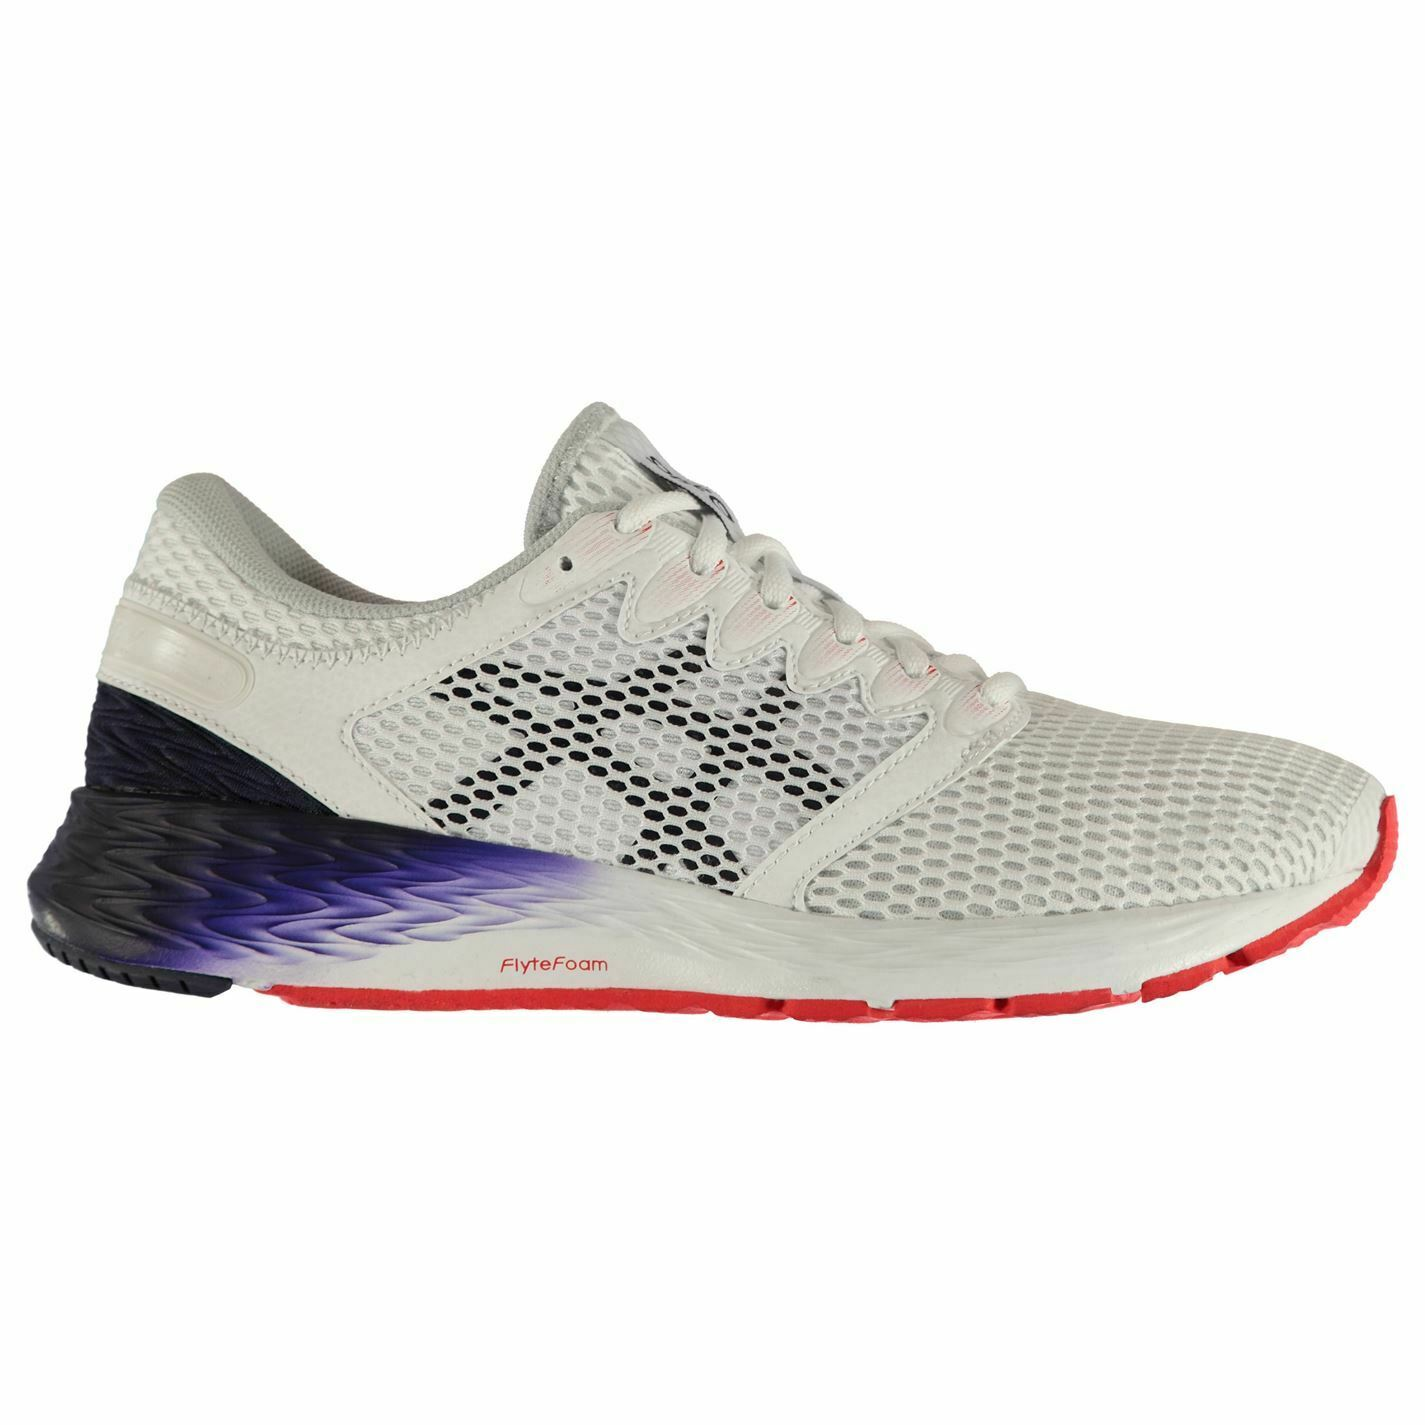 dc04e8afbf010 Asics Mens Roadhawk Ff 2 Running shoes Athletic Trainers Sneakers Sport